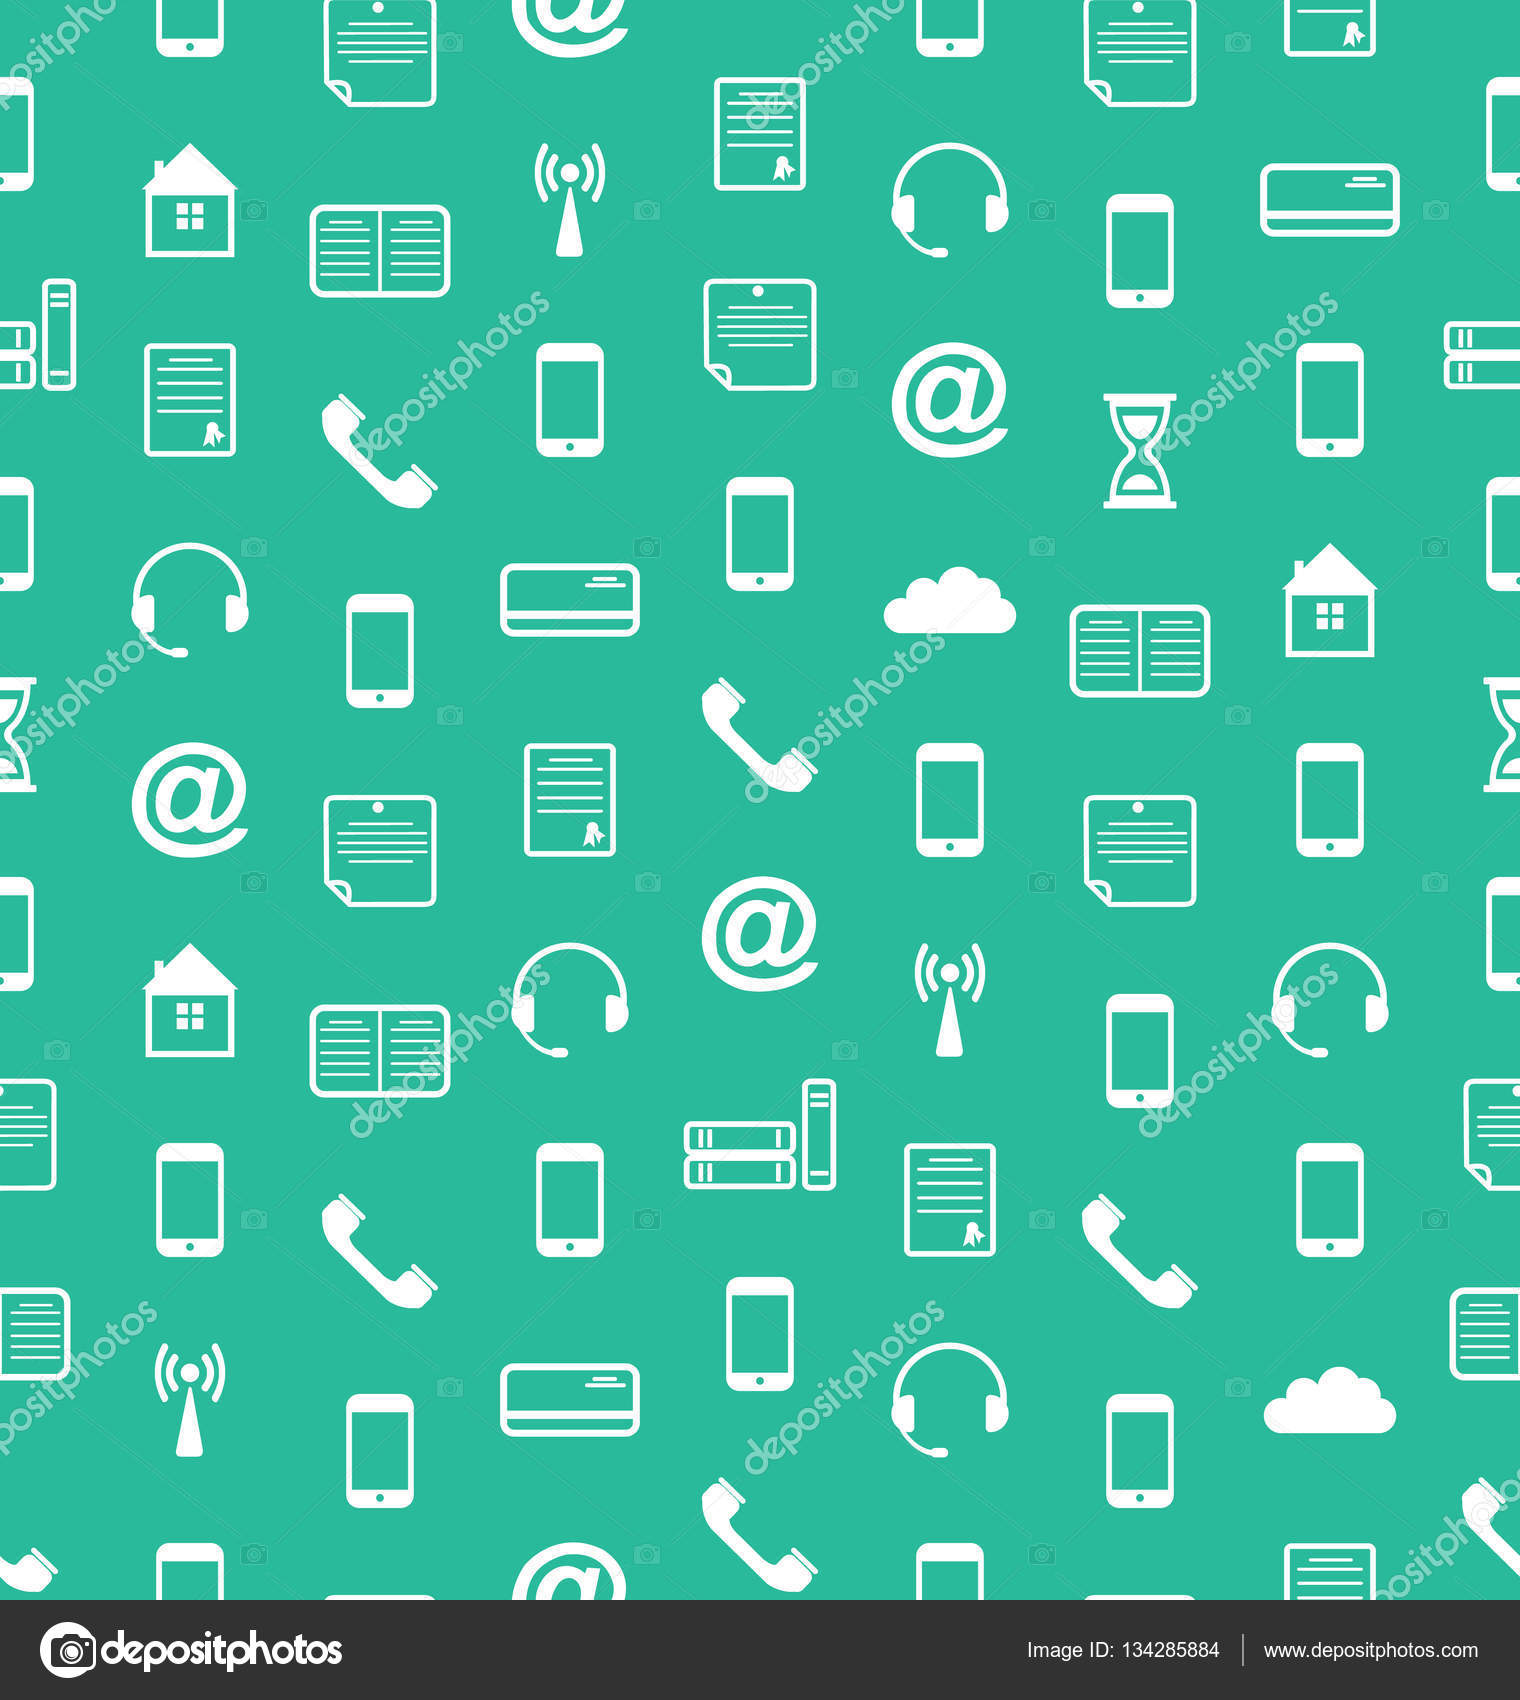 Seamless Pattern With Business And Financial Flat Icons Endless Wallpaper Stock Photo